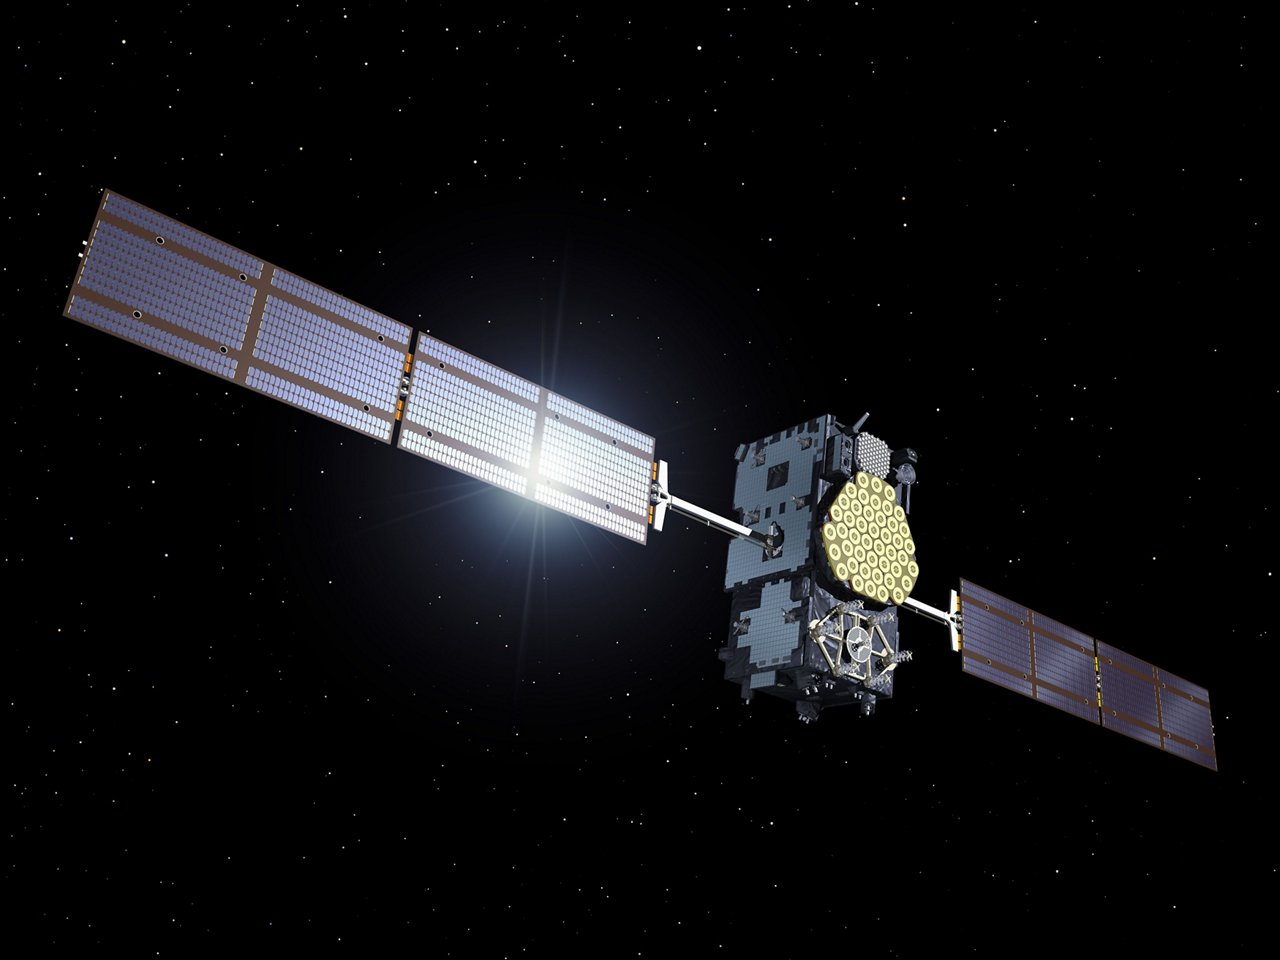 A Galileo satellite of the In-Orbit Validation phase in space